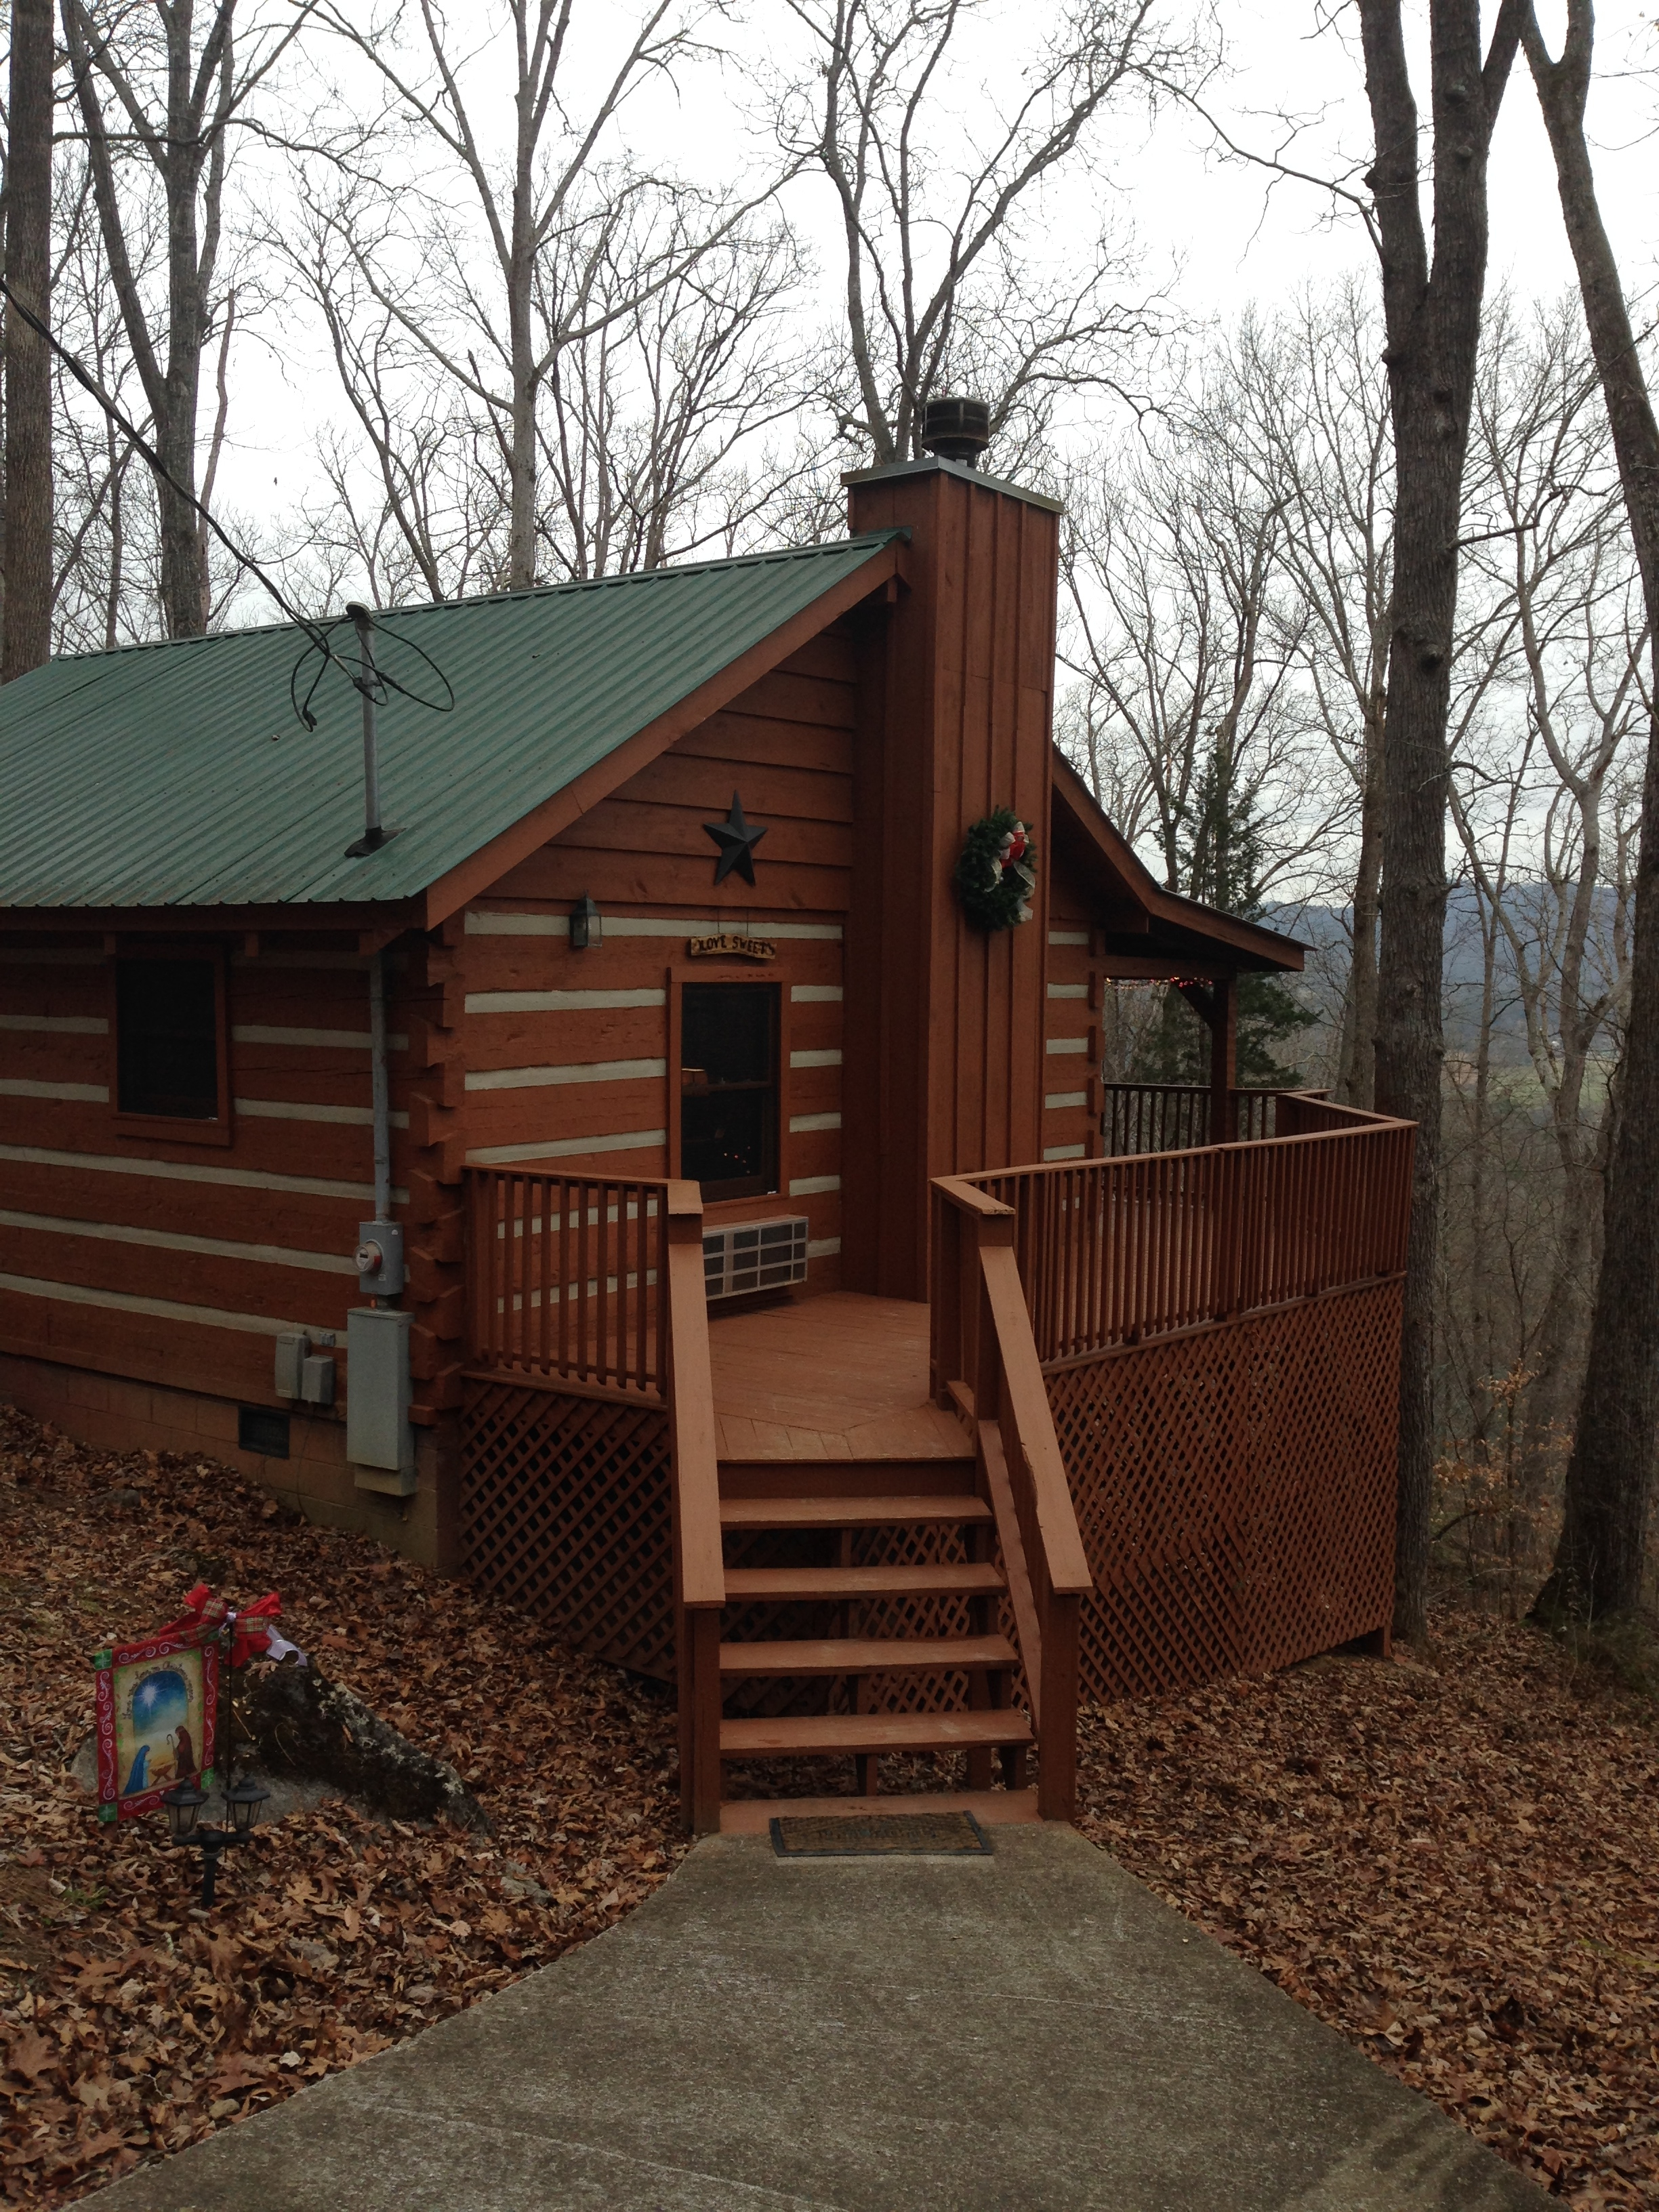 Smoky mountain heritage log cabins townsend tennessee for Smoky mountain tennessee cabin rentals